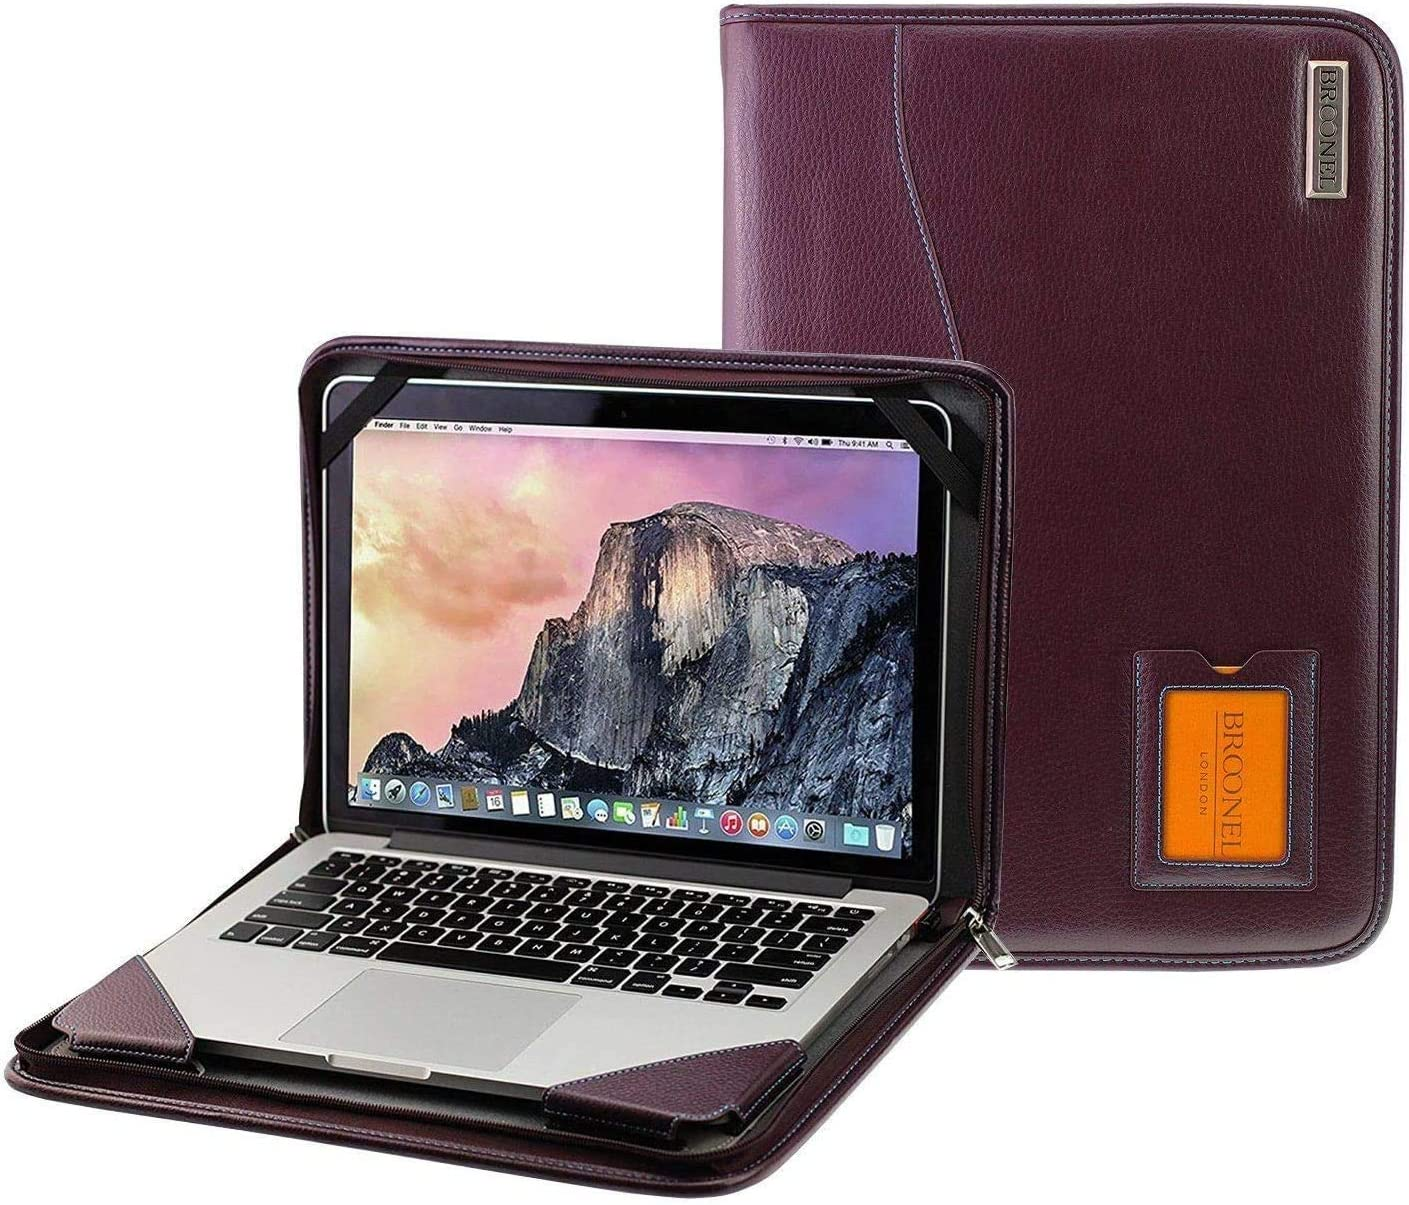 "Broonel - Contour Series - Purple Leather Protective Cover with Shoulder Strap - Compatible with The Dell Latitude 3410 14"" Business Laptop"